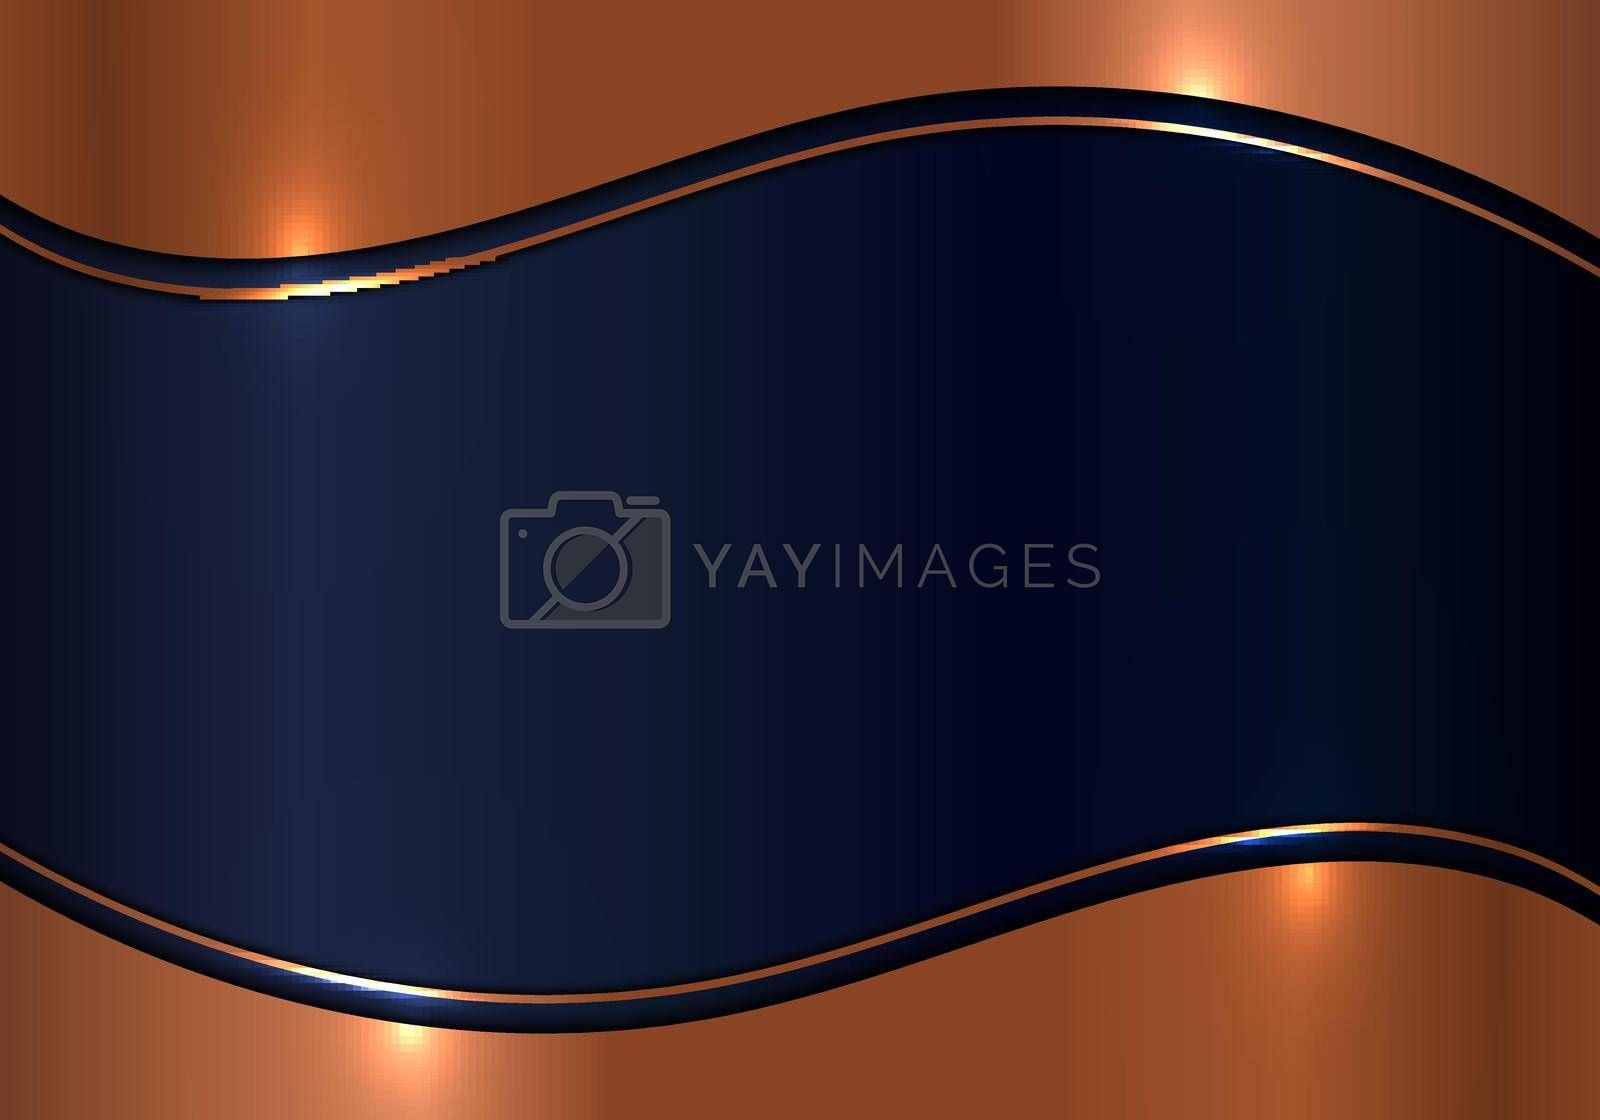 Modern template design 3D wave gold metal texture on blue shiny background luxury background. Vector illustration